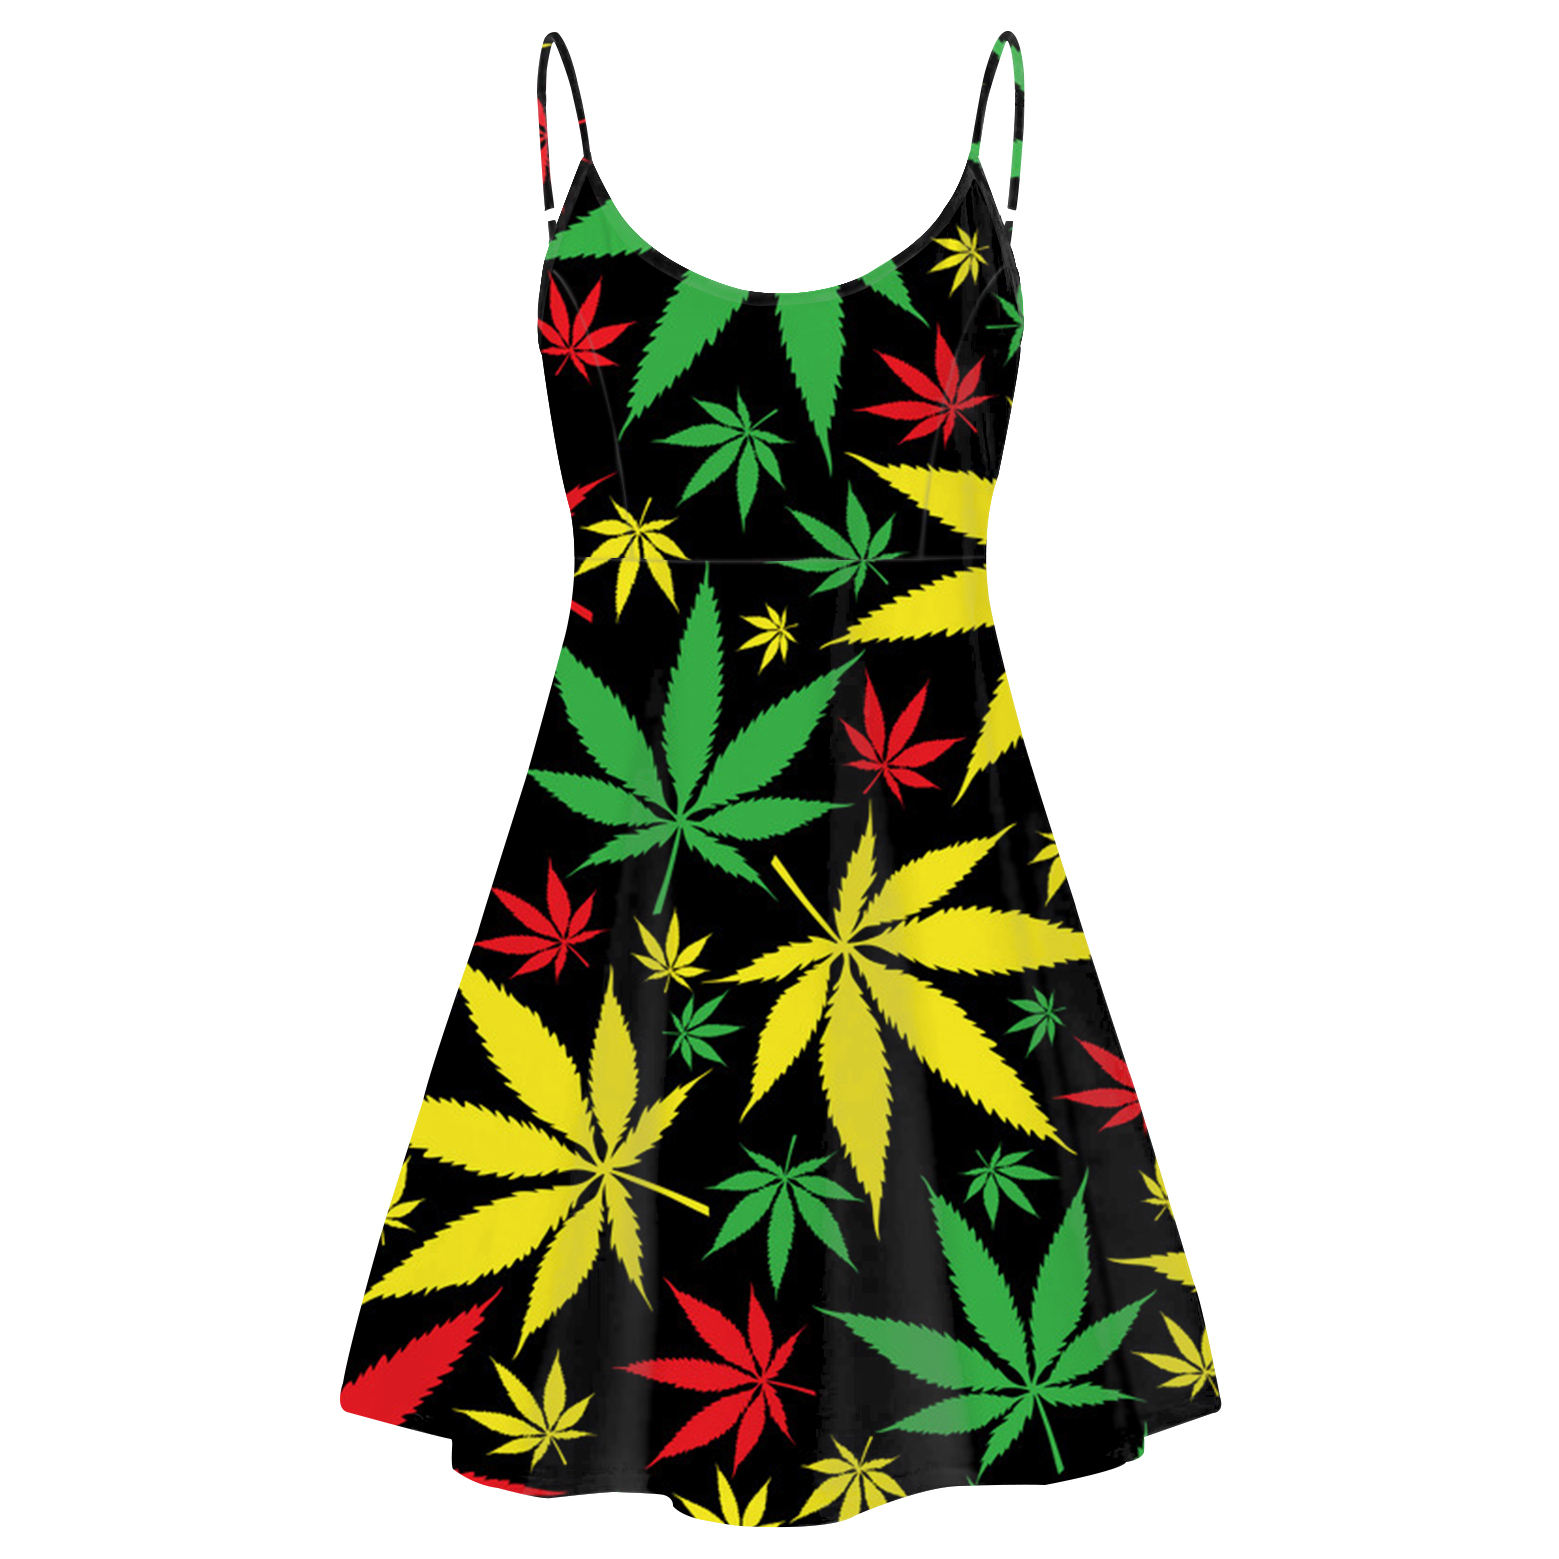 Low MOQ Women Slip Dresses Wholesale Colorful Hemp Leaf All Over Pattern Clothes Lady Sexy Backless Club Party Sling Mini Dress